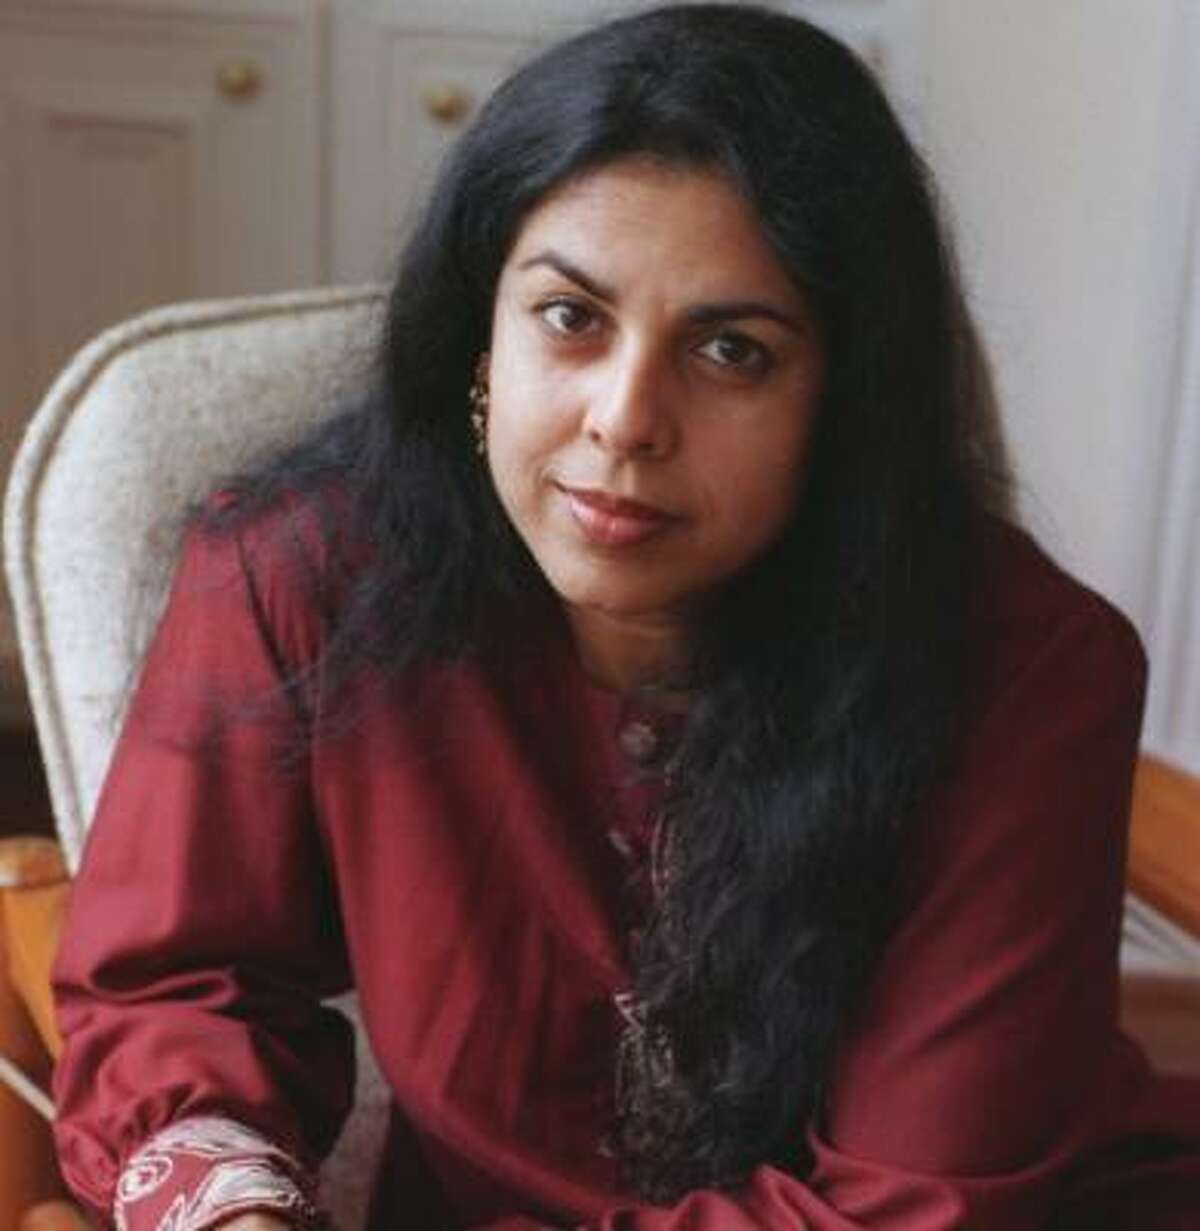 One of the acclaimed writers on a Houston college faculty is Chitra Divakaruni.